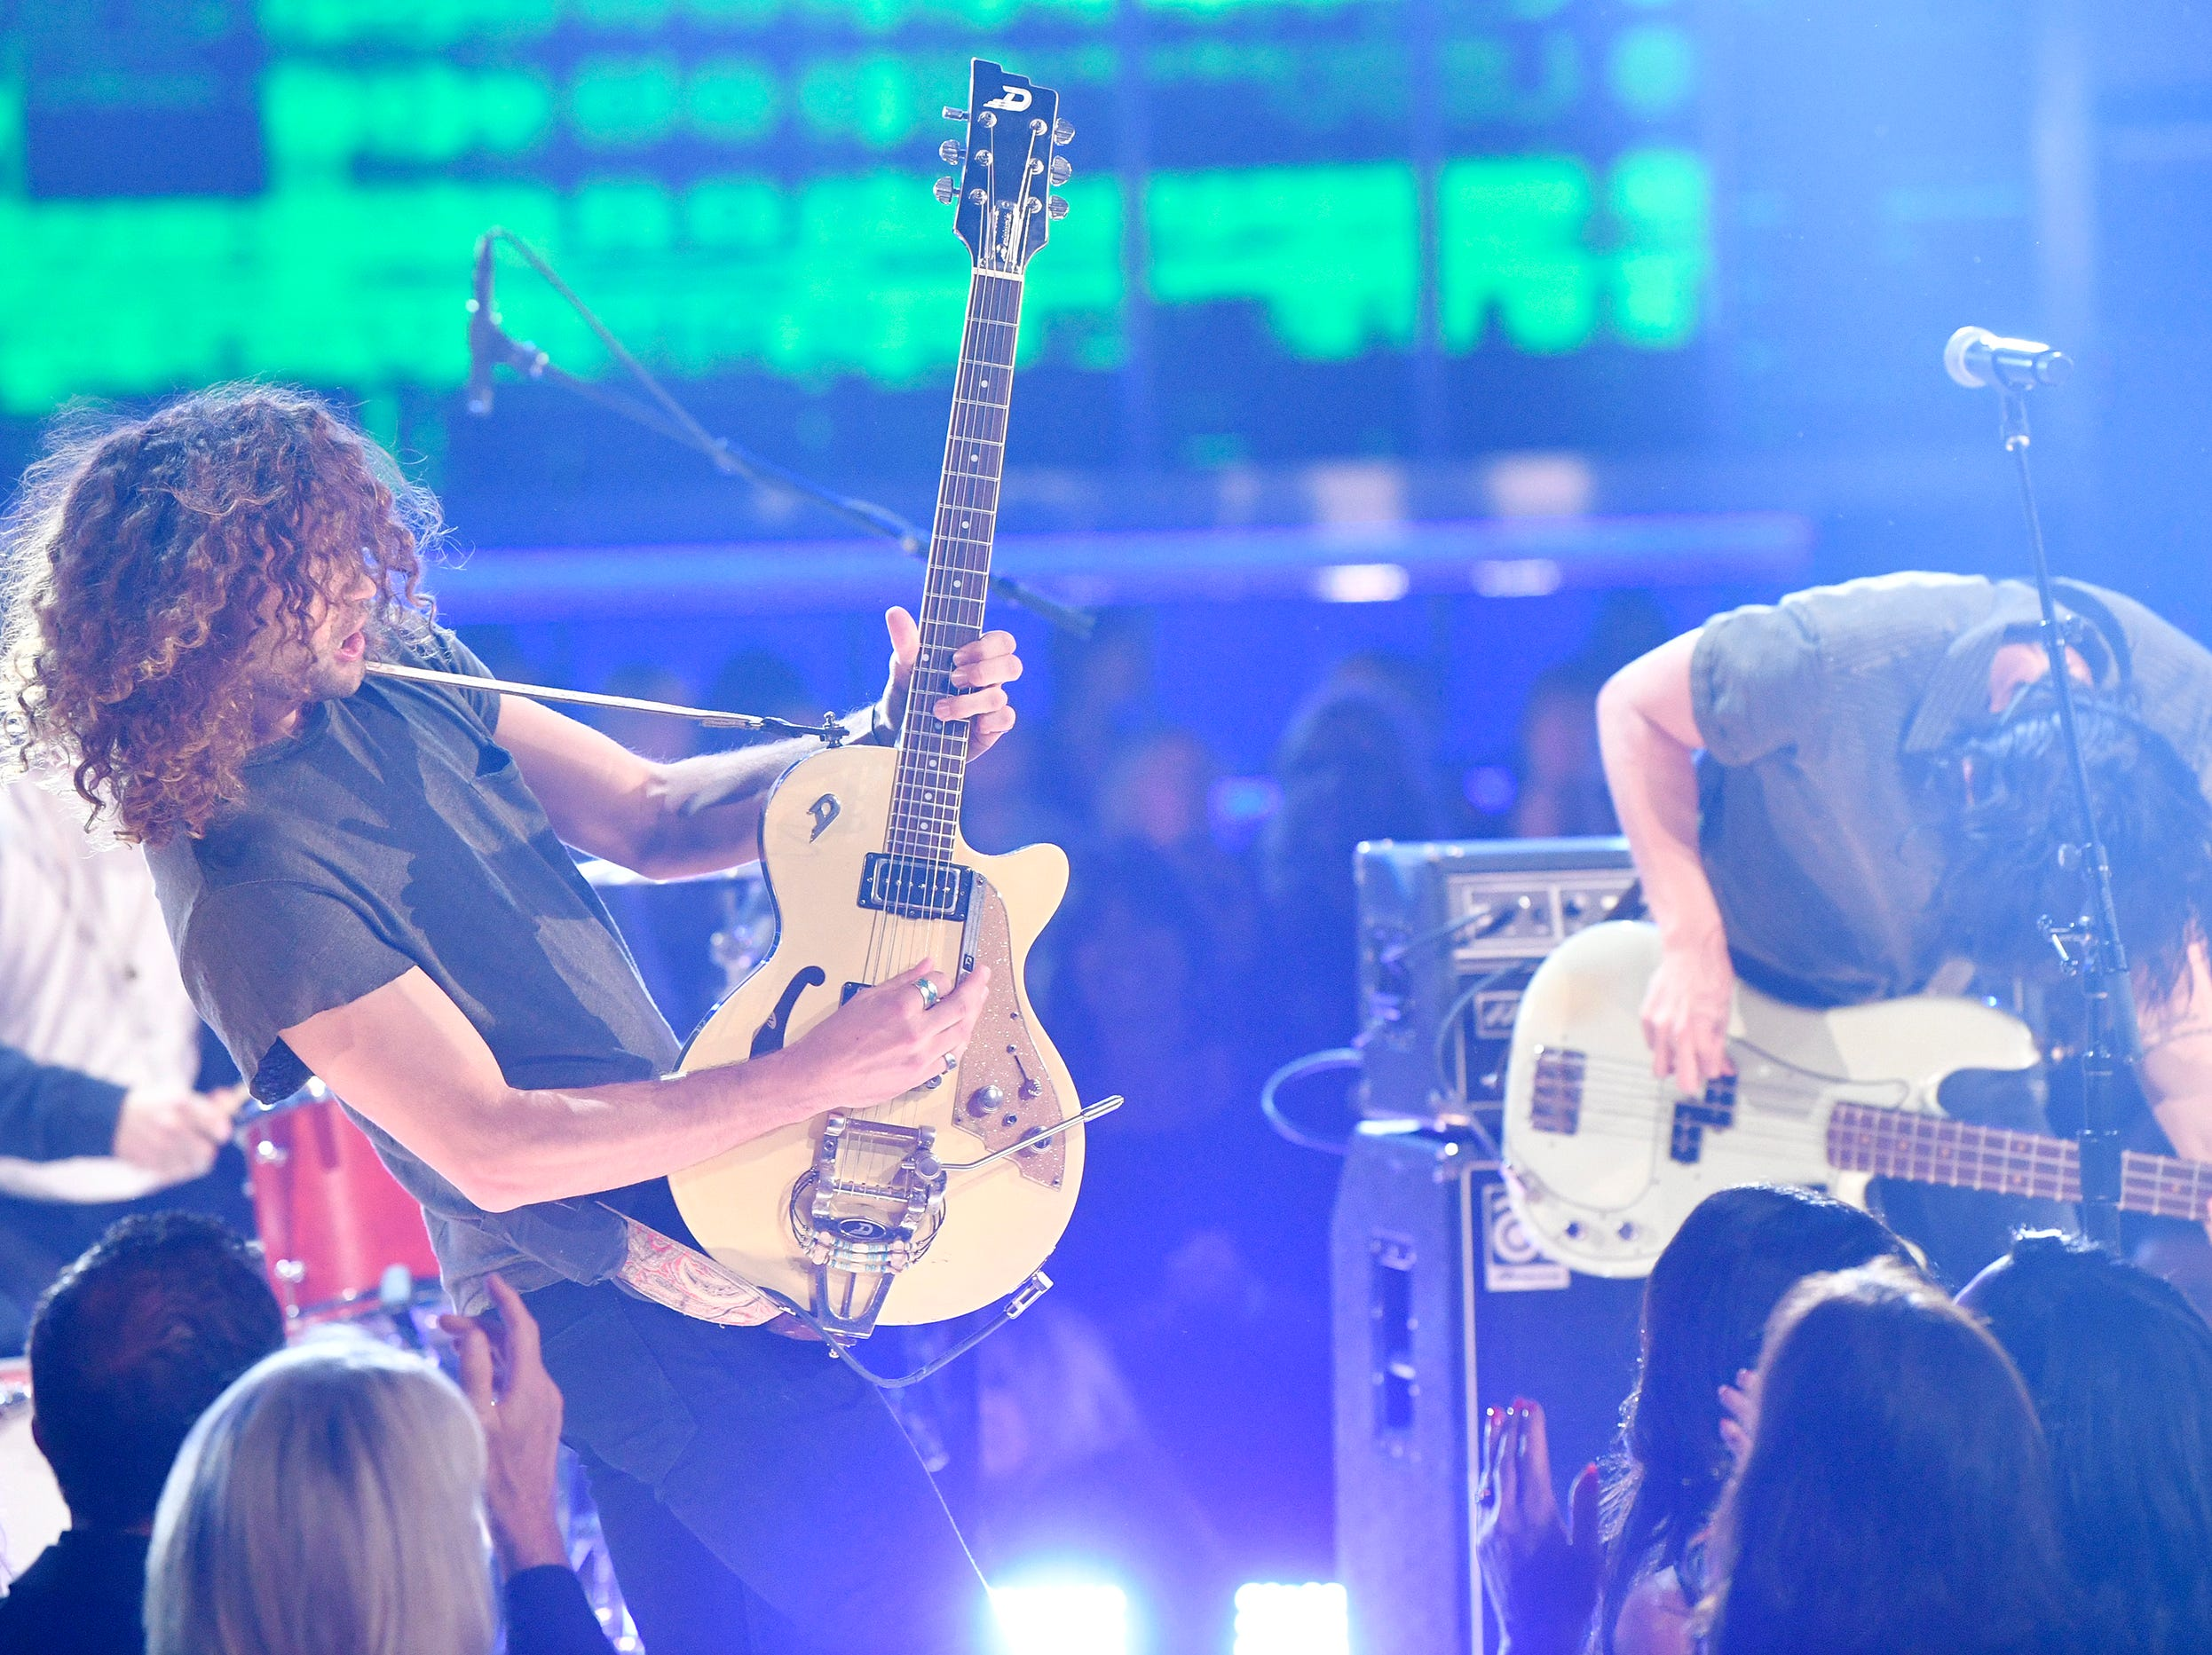 Music group Lanco performs during the 54TH Academy of Country Music Awards Sunday, April 7, 2019, in Las Vegas, Nev.